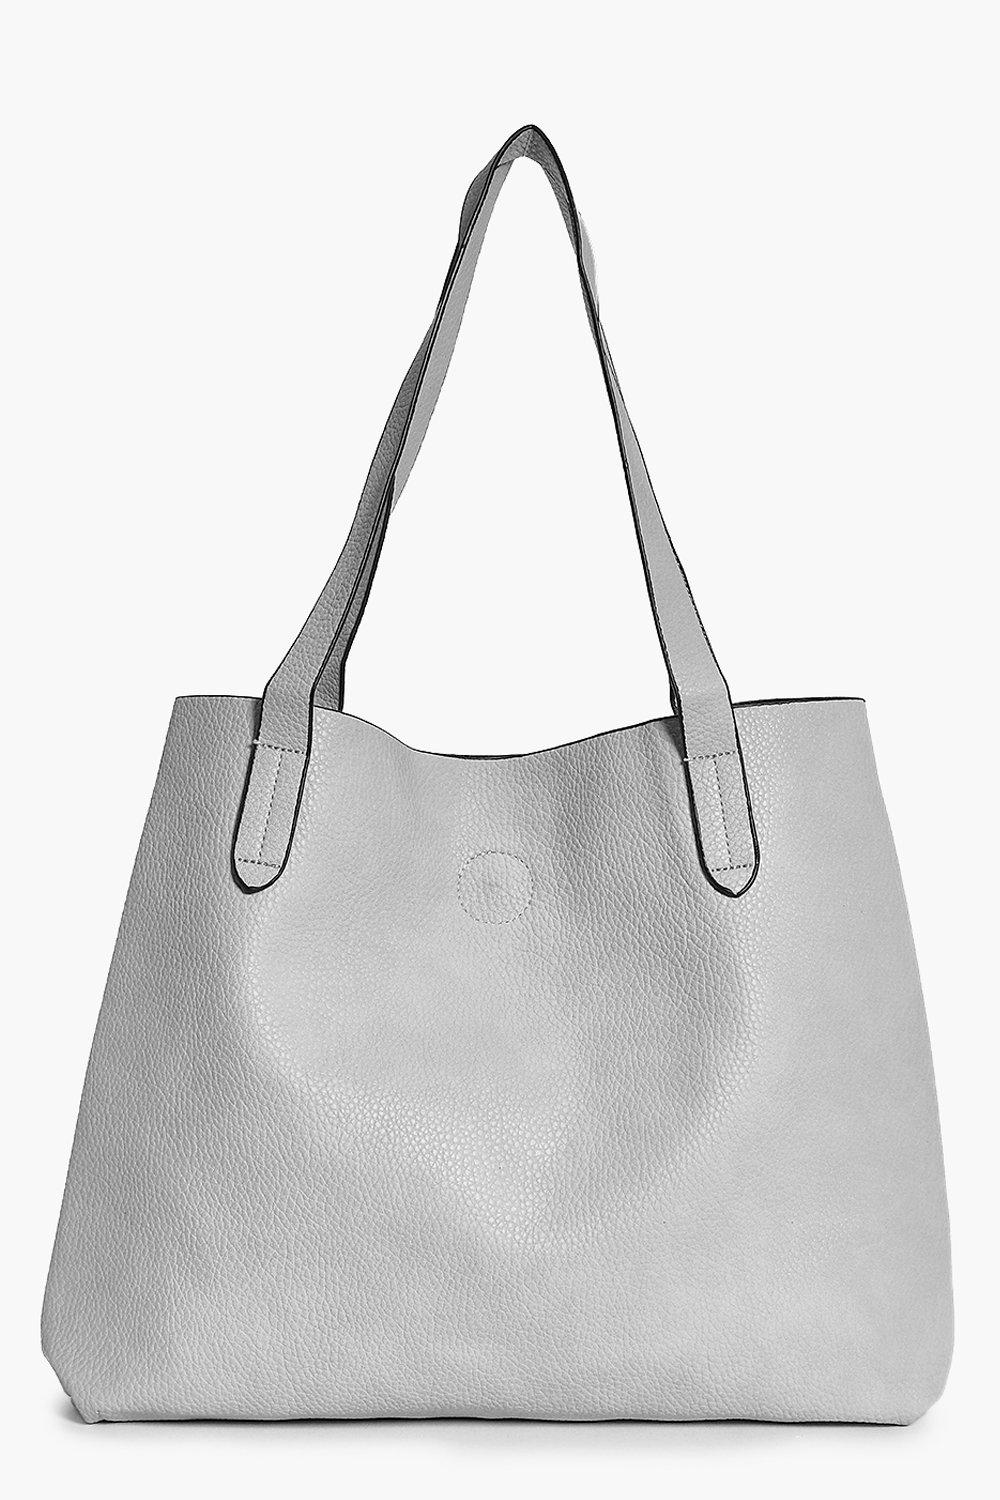 Basic Popper Shopper Bag - grey - Victoria Basic P